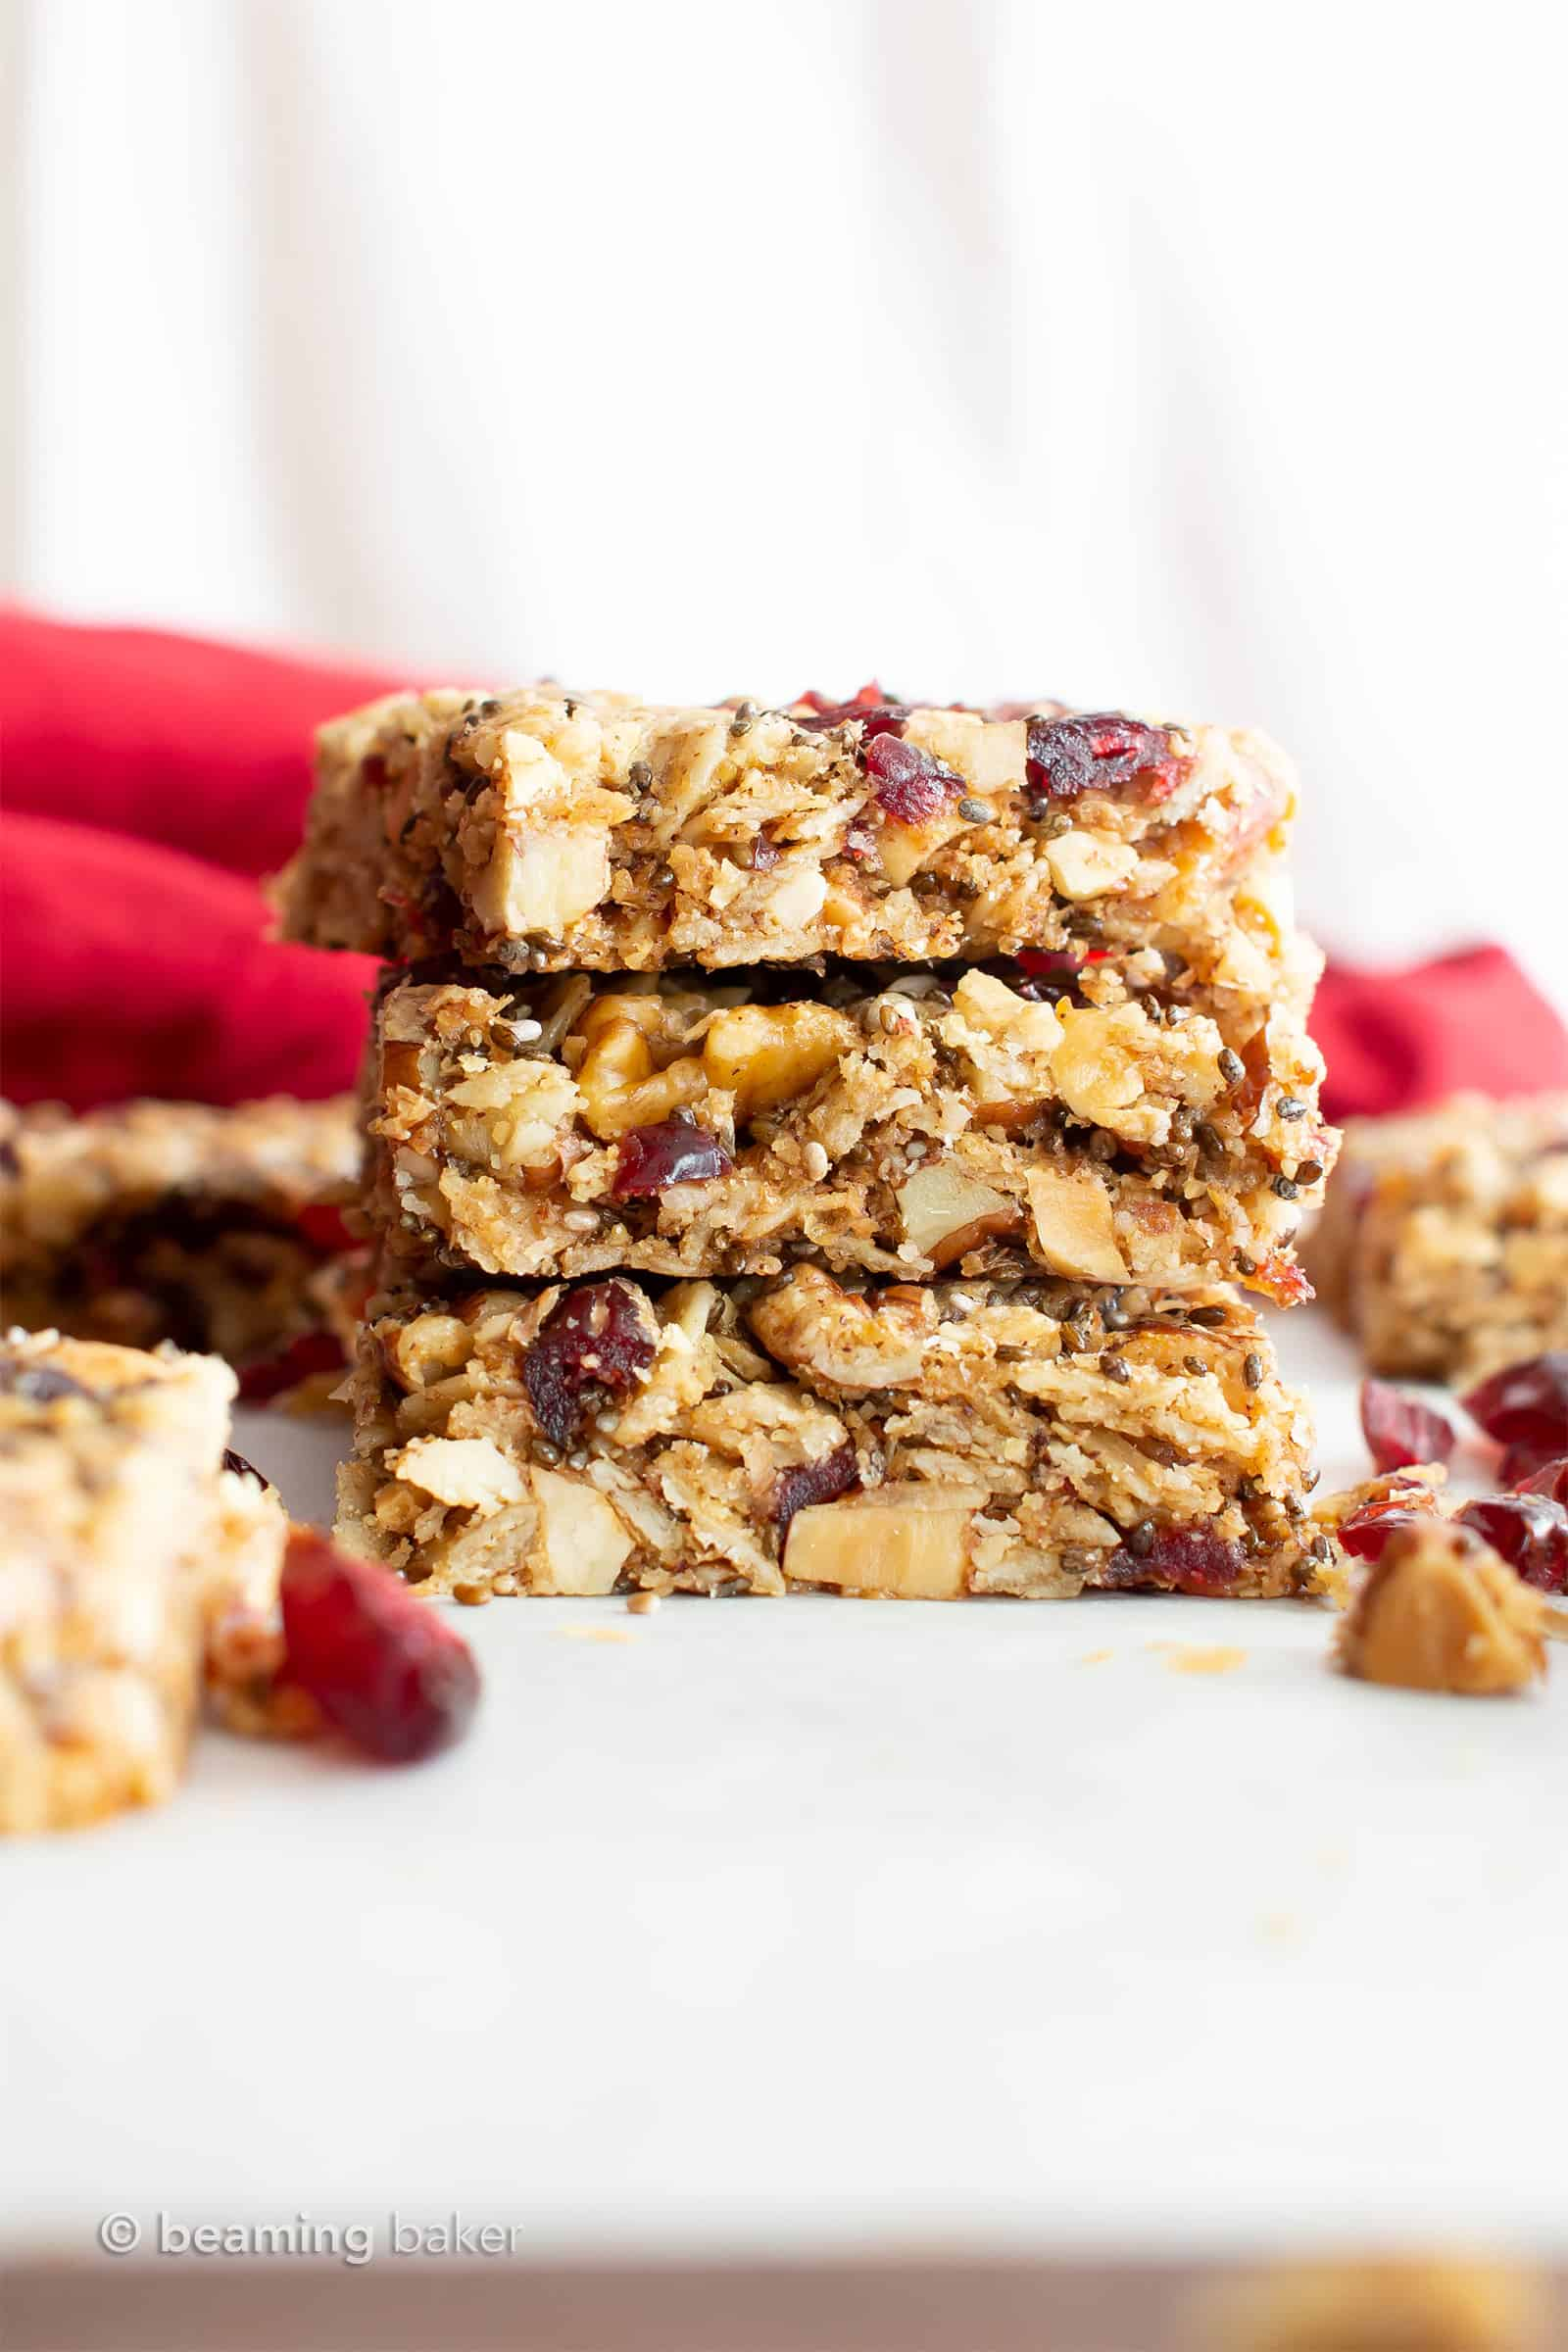 Cranberry Chia Gluten Free Vegan Snack Bars: this healthy vegan snack bars recipe yields chewy & satisfying bars! The best vegan snack bars recipe—packed with chia & flax to keep you full! #Snacks #Bars #GlutenFree #Vegan #Chia | Recipe at BeamingBaker.com